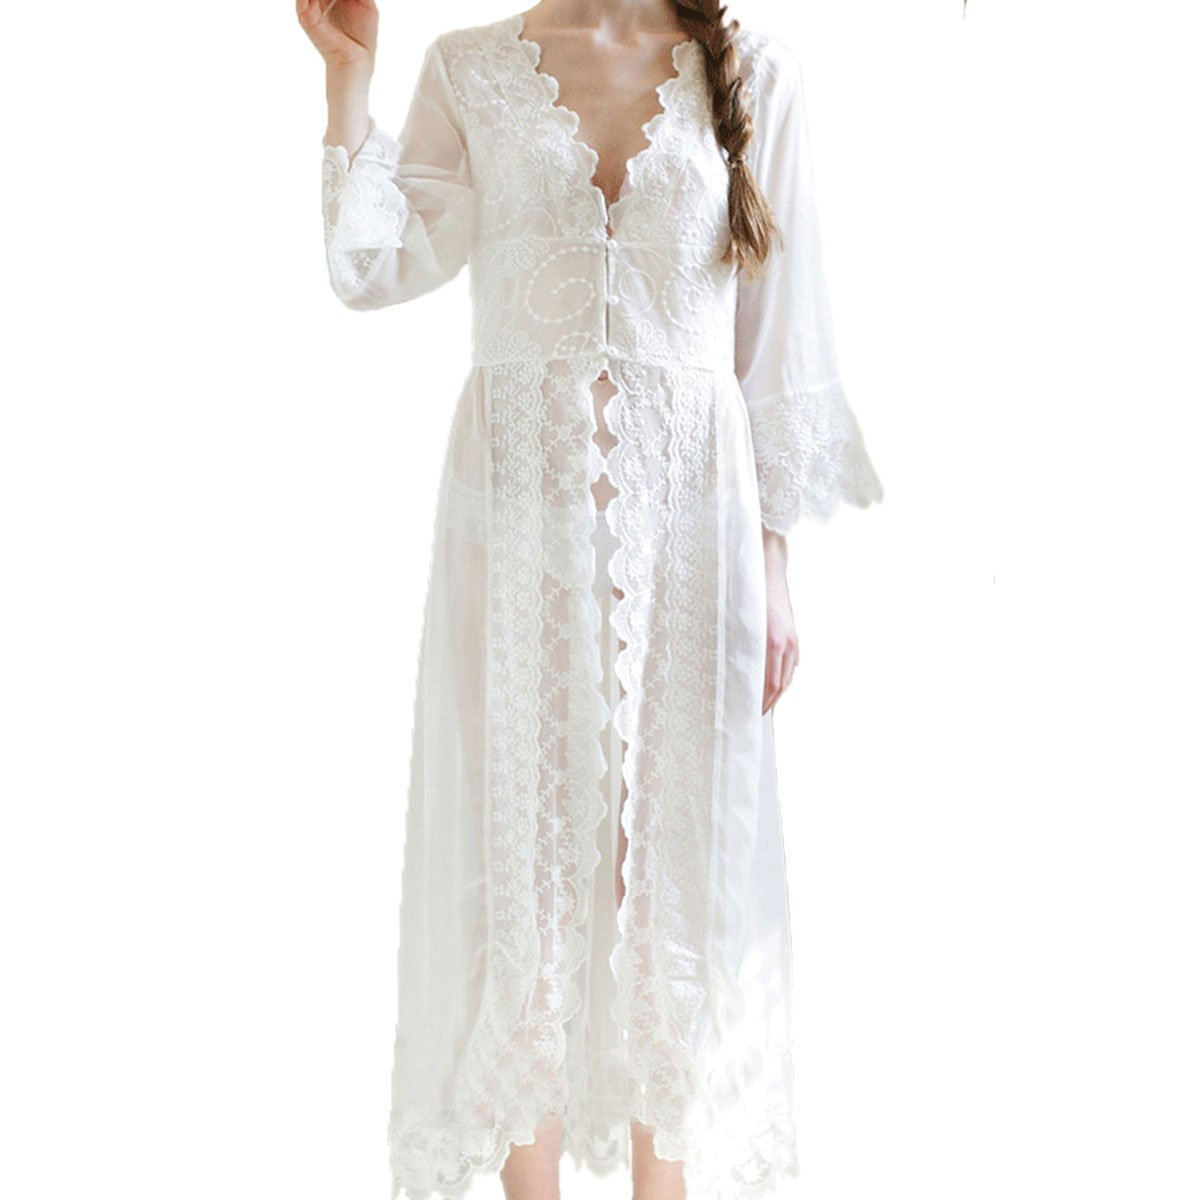 Cityelf Women's Sexy Clear Chiffon Vintage Maxi Pretty Lace Sleepwear SYW0002 0